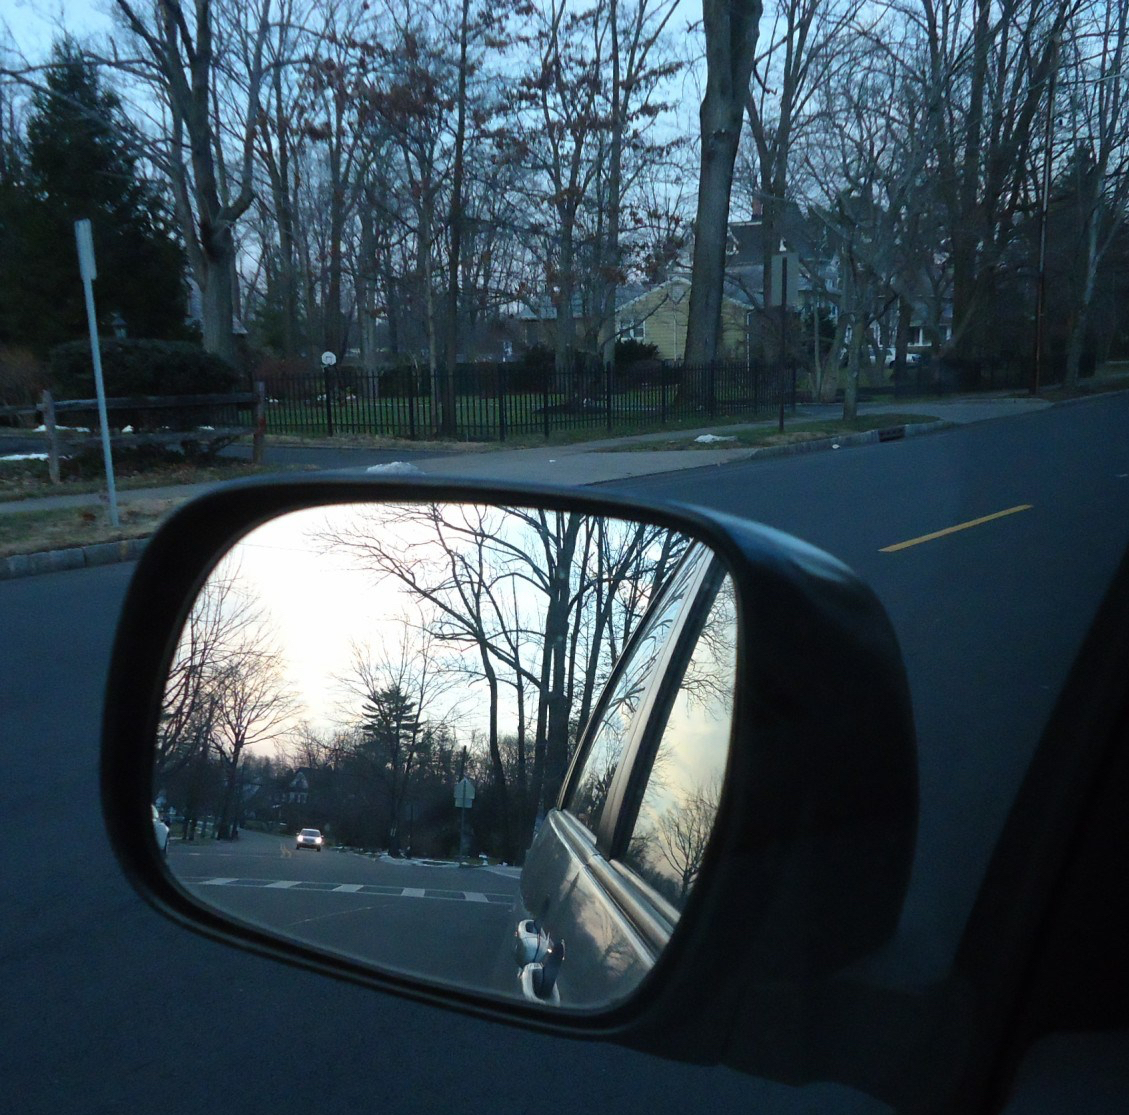 Scene_in_the_rear_view_mirror_of_a_car